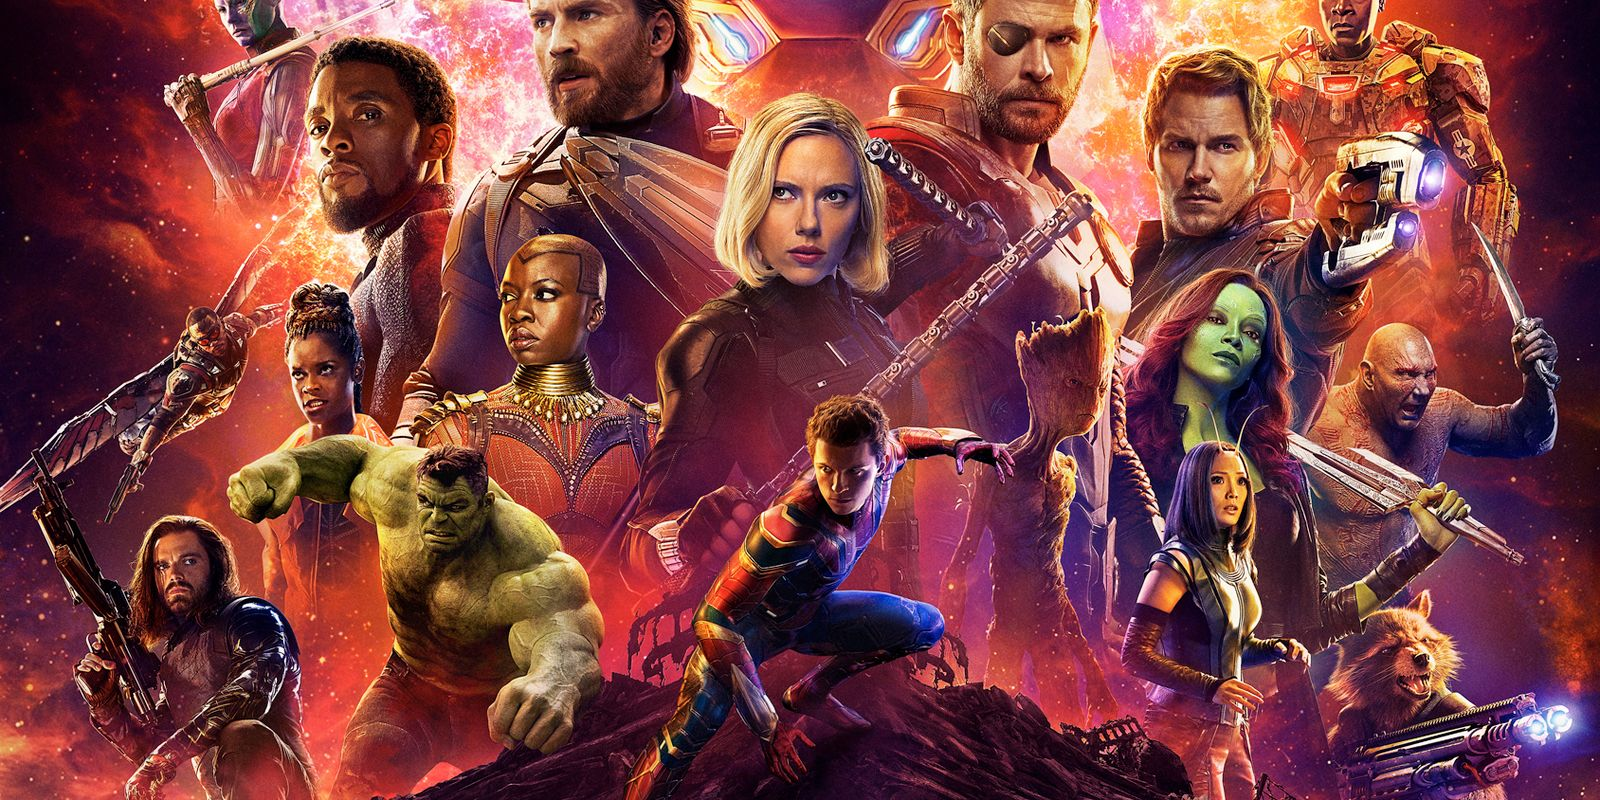 Avengers: Infinity War Emojis Are Now Live on Twitter | CBR